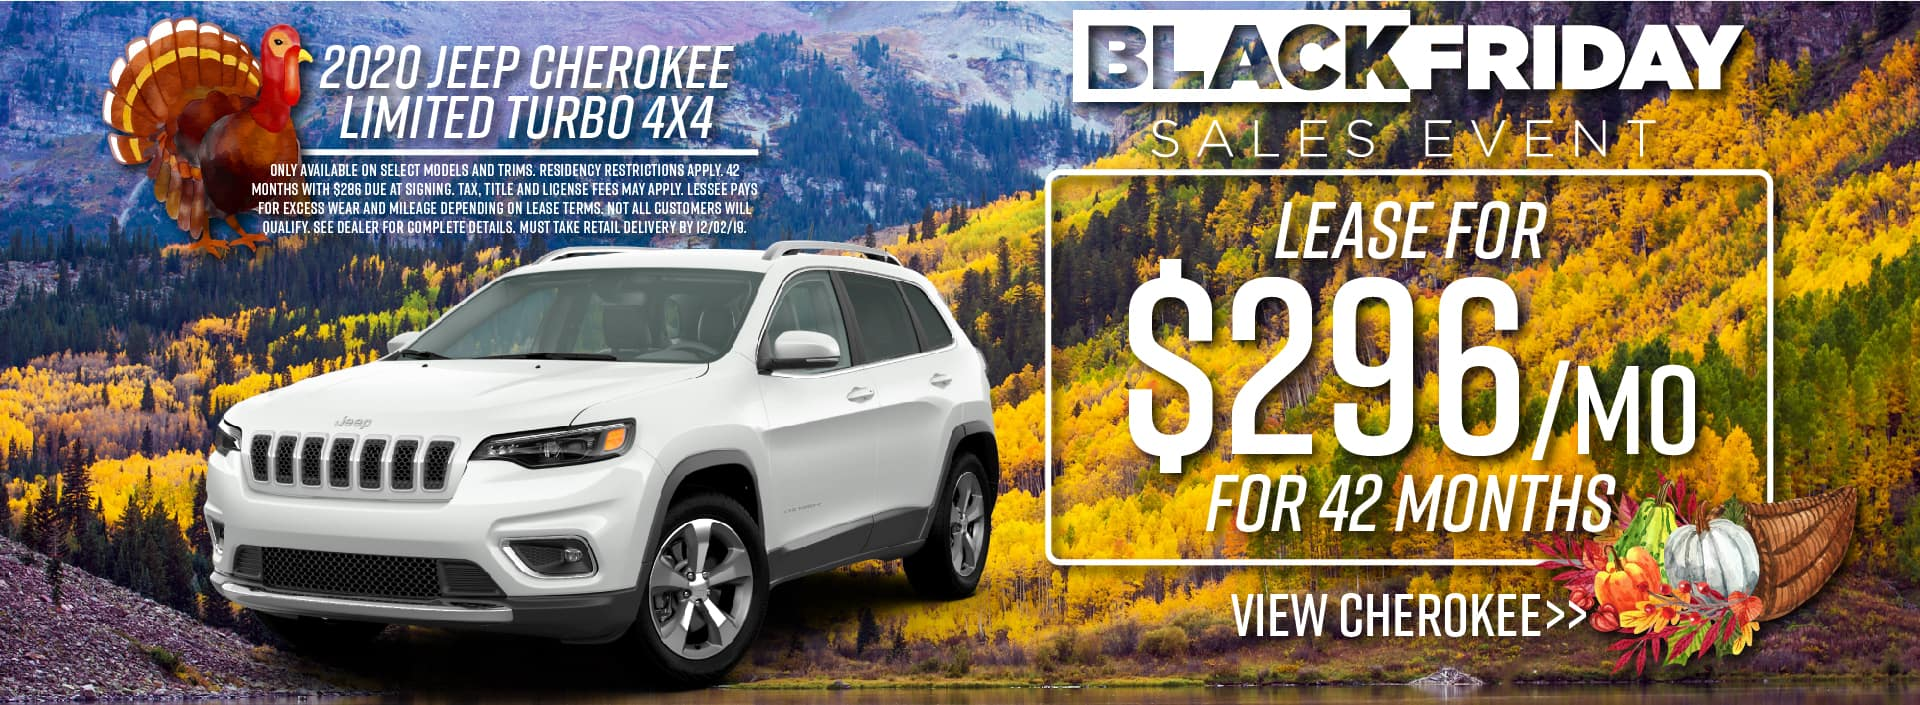 Get a Deal at the Black Friday Sales Event near Denver CO